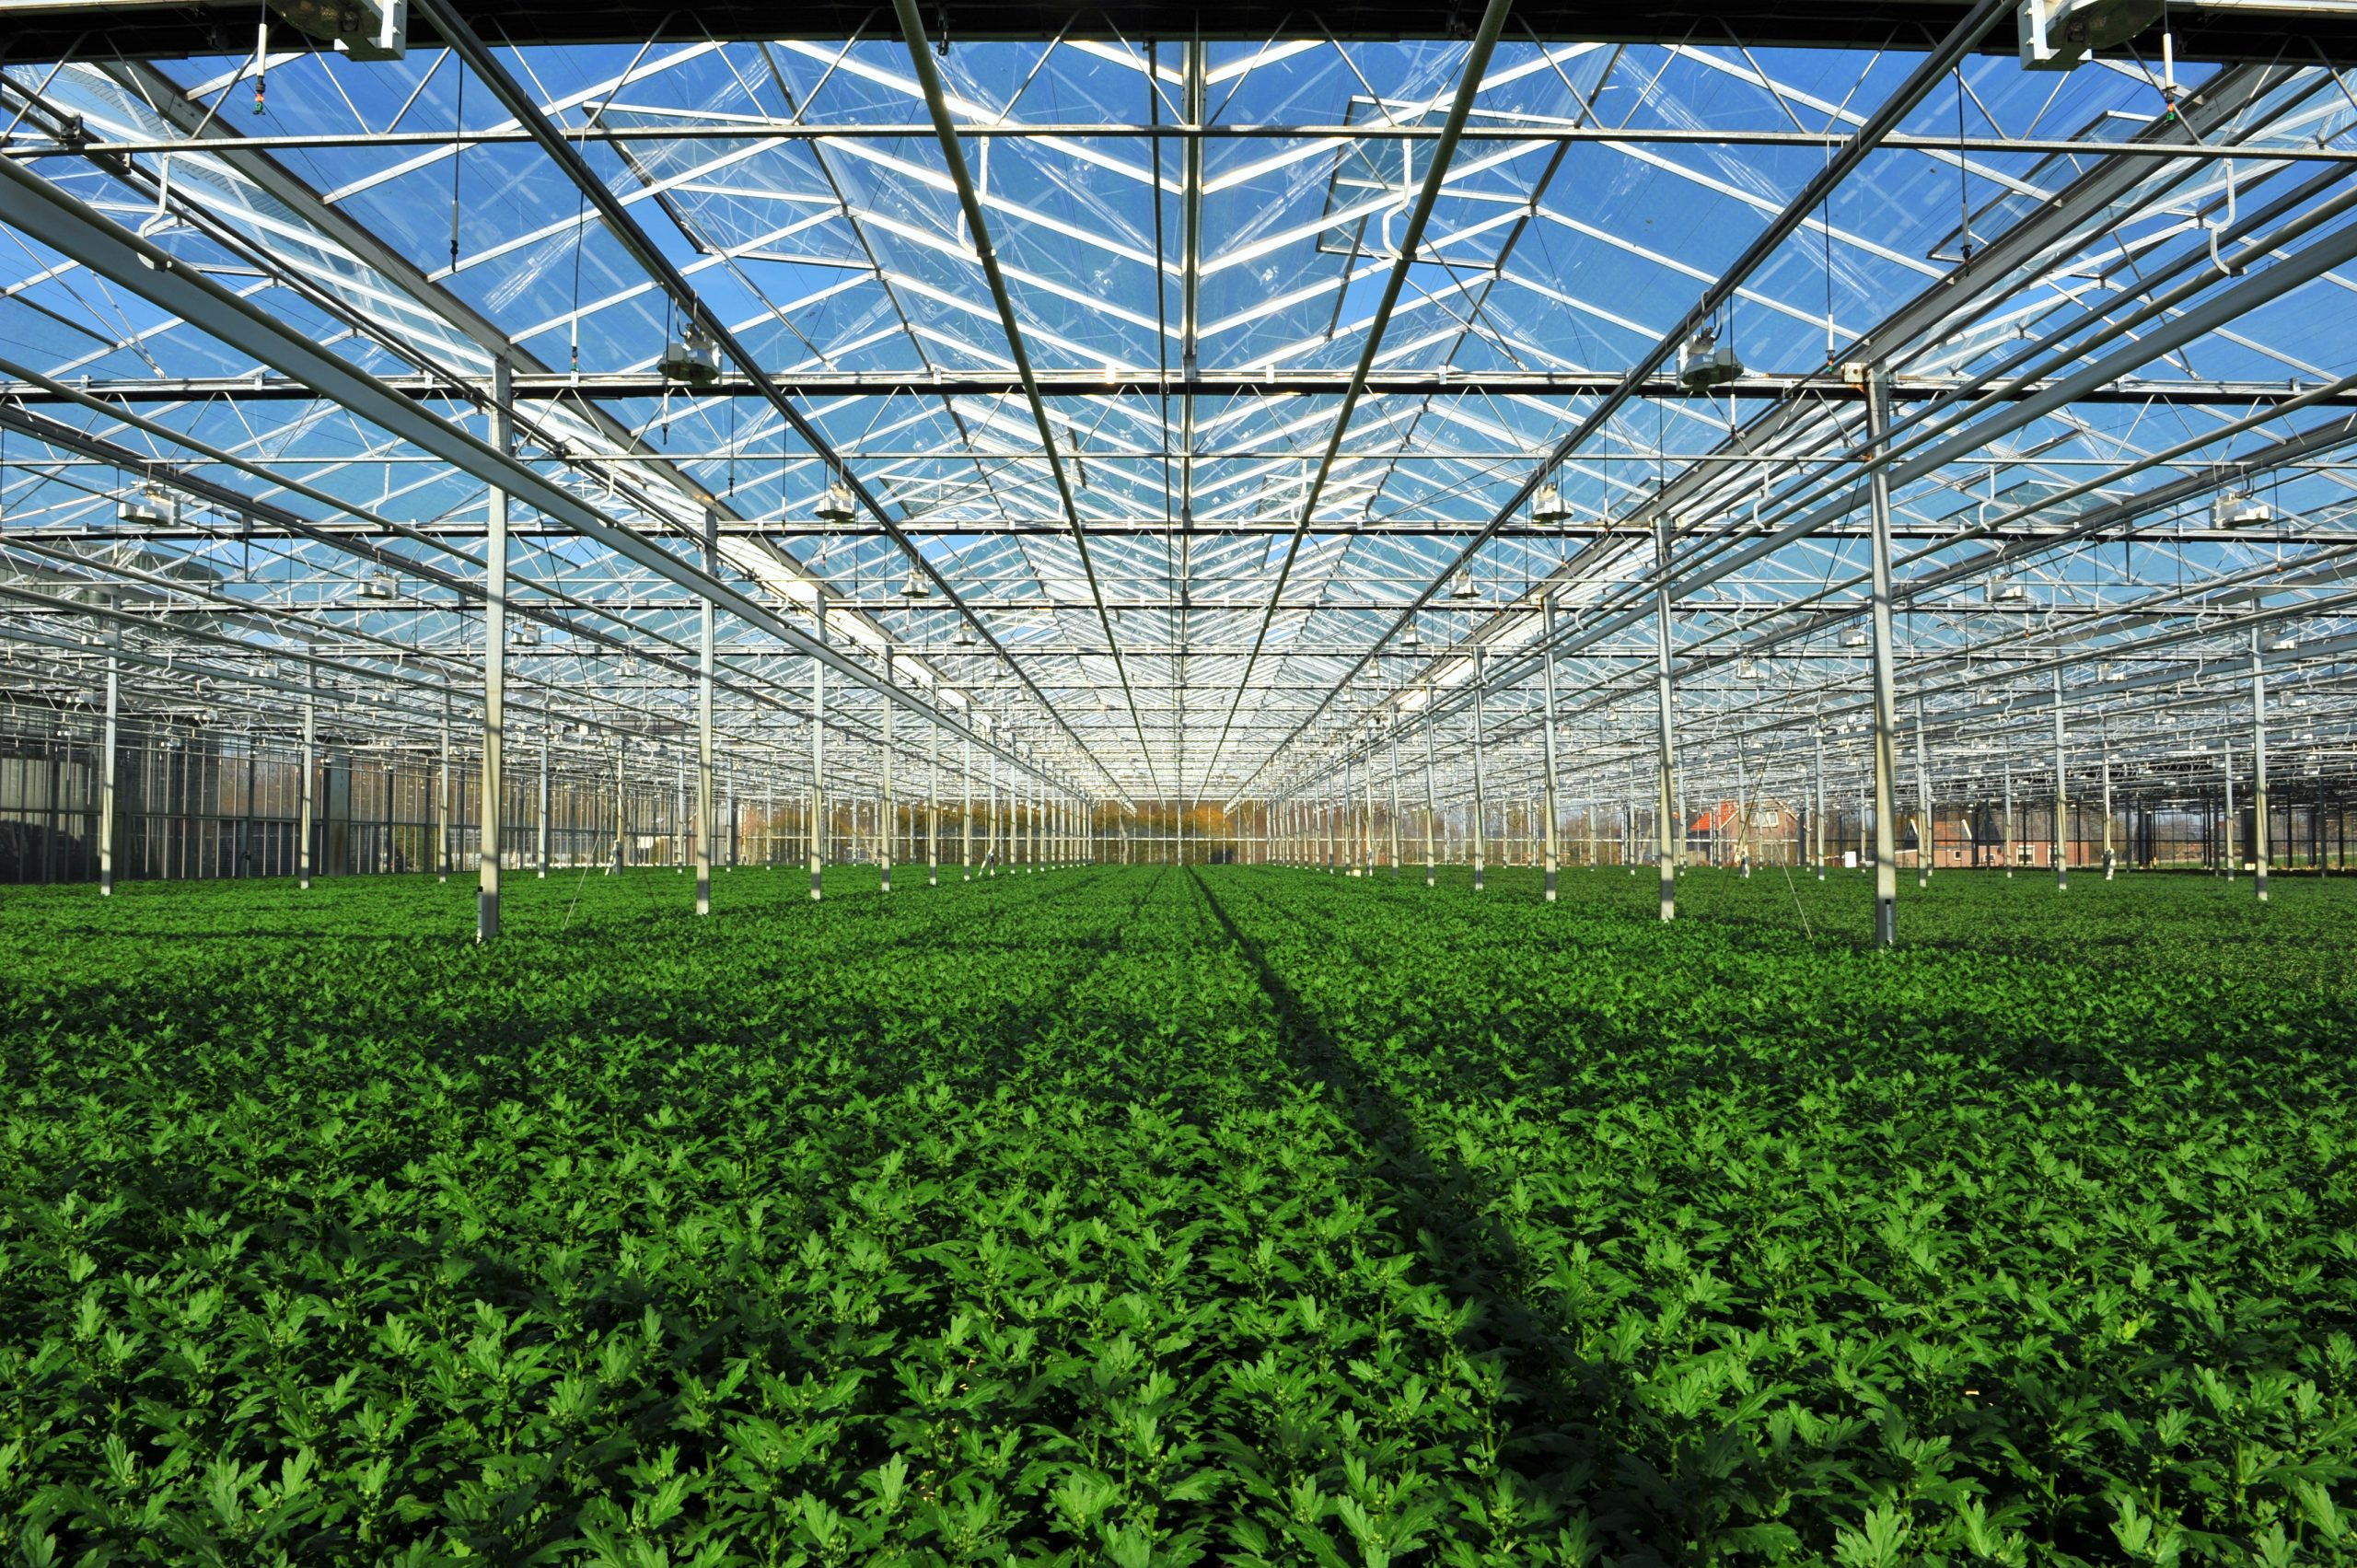 Greenhouse Lighting Design: An Essential Guide